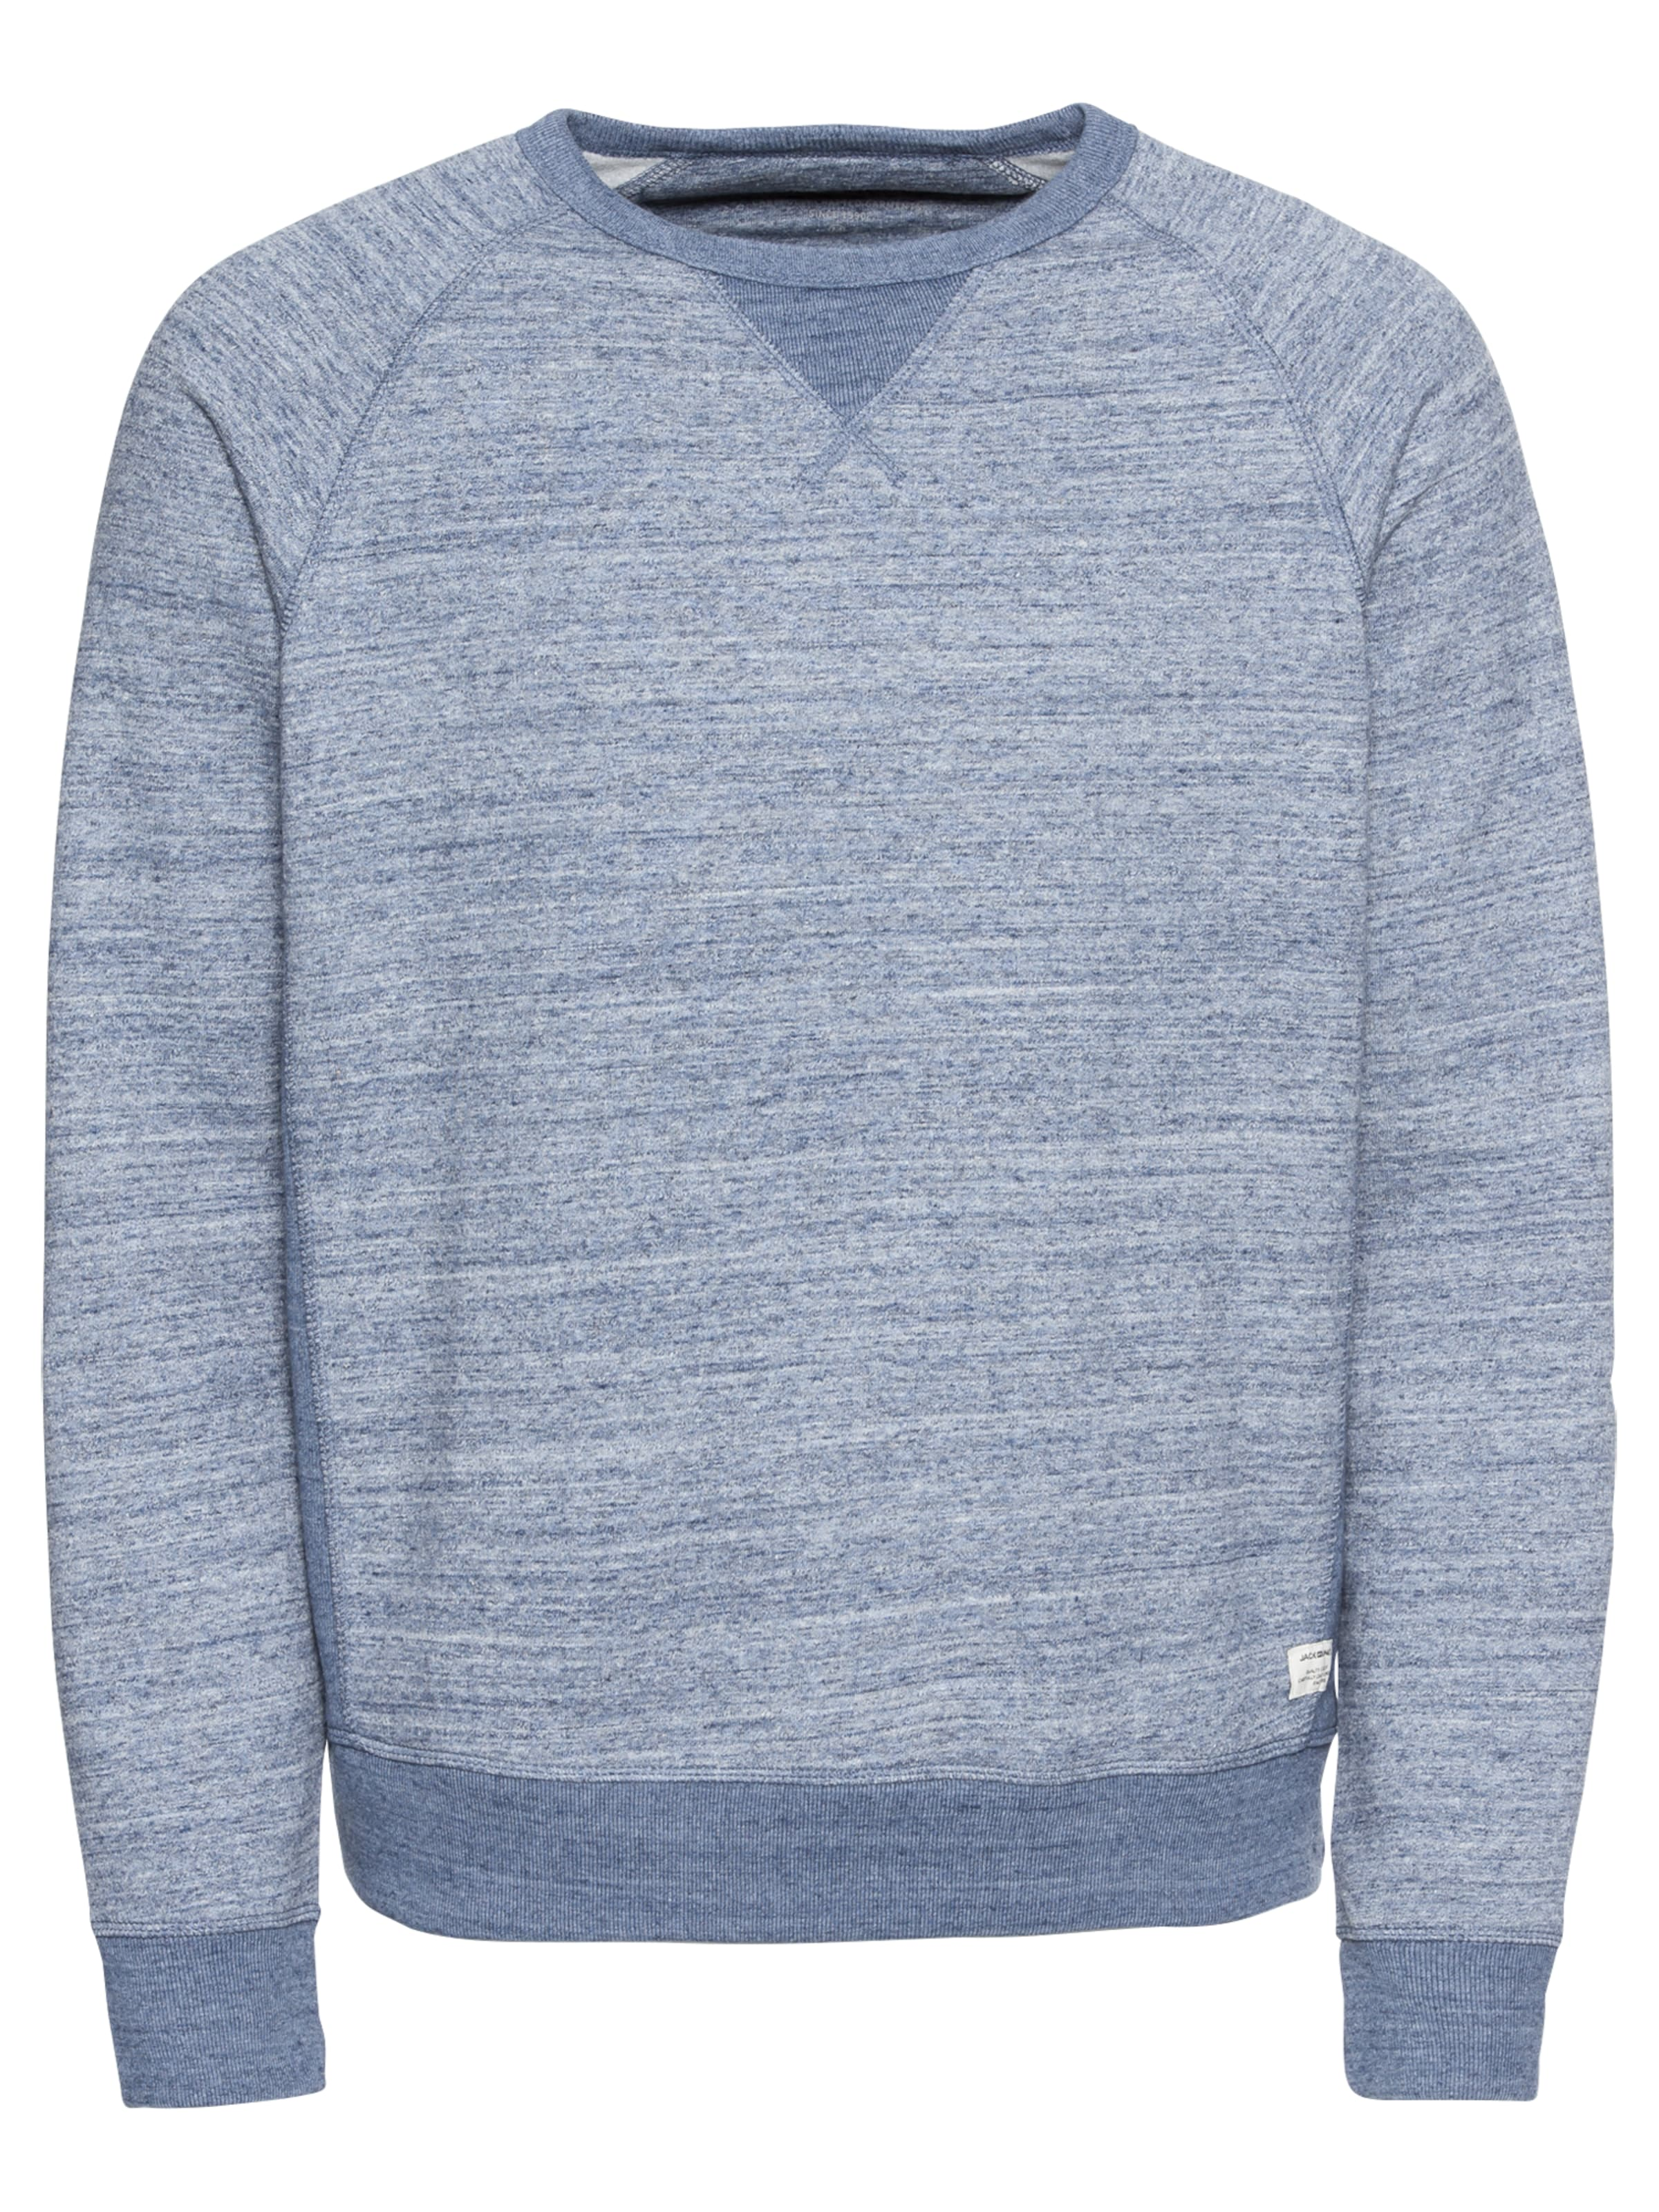 En Lie De Jones Jackamp; Vin Sweat shirt QdCxeWrBo